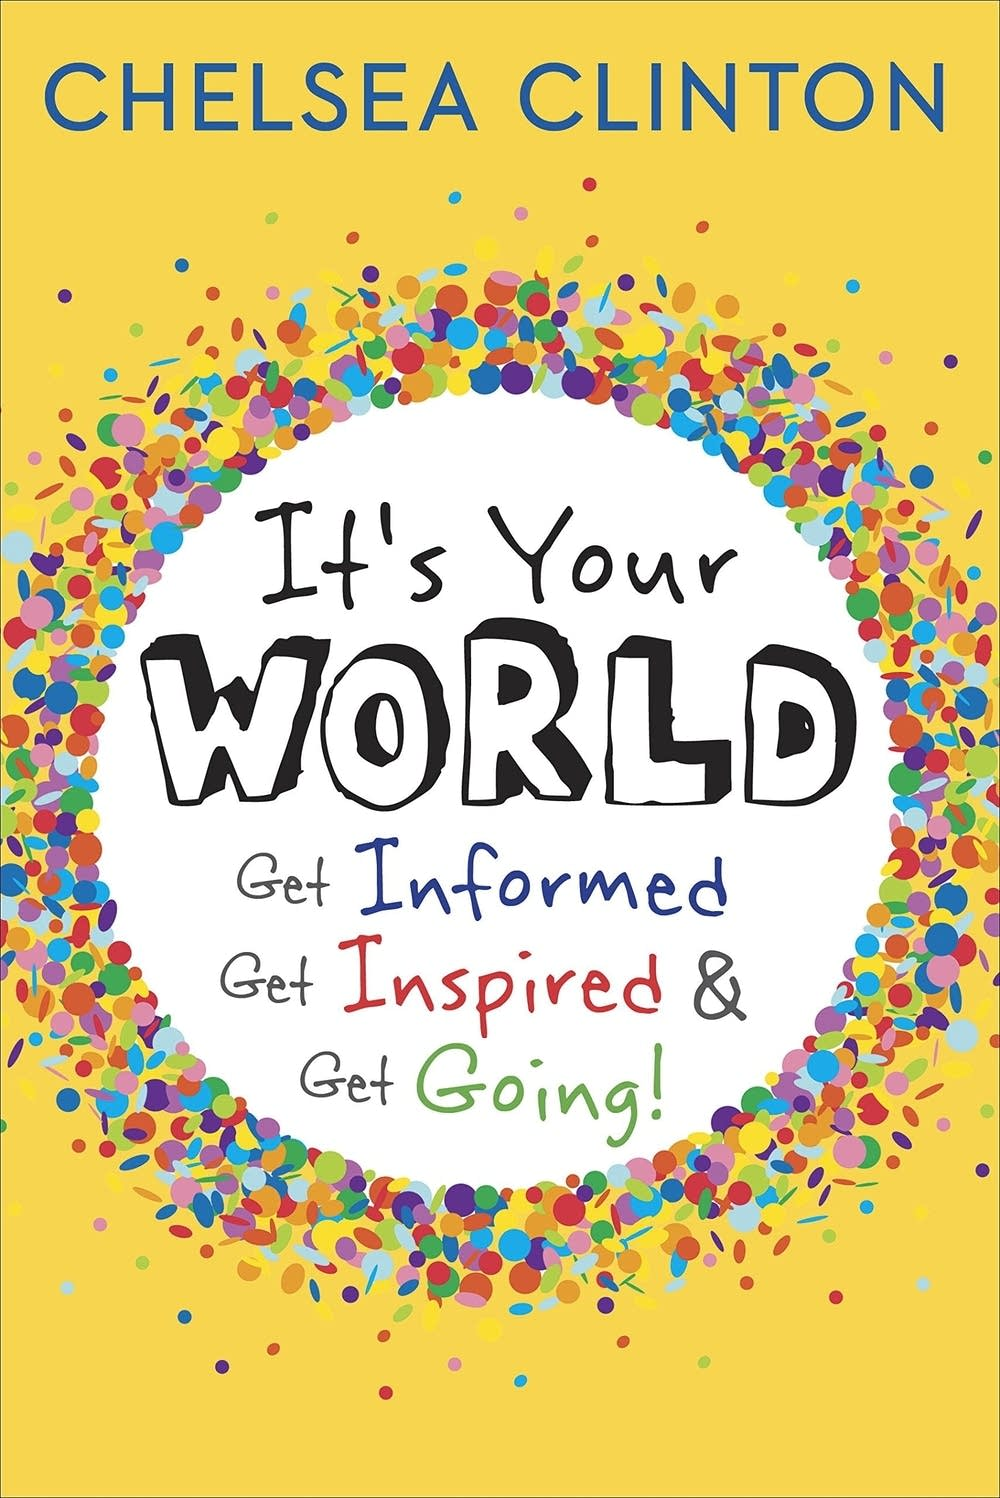 'It's Your World' by Chelsea Clinton